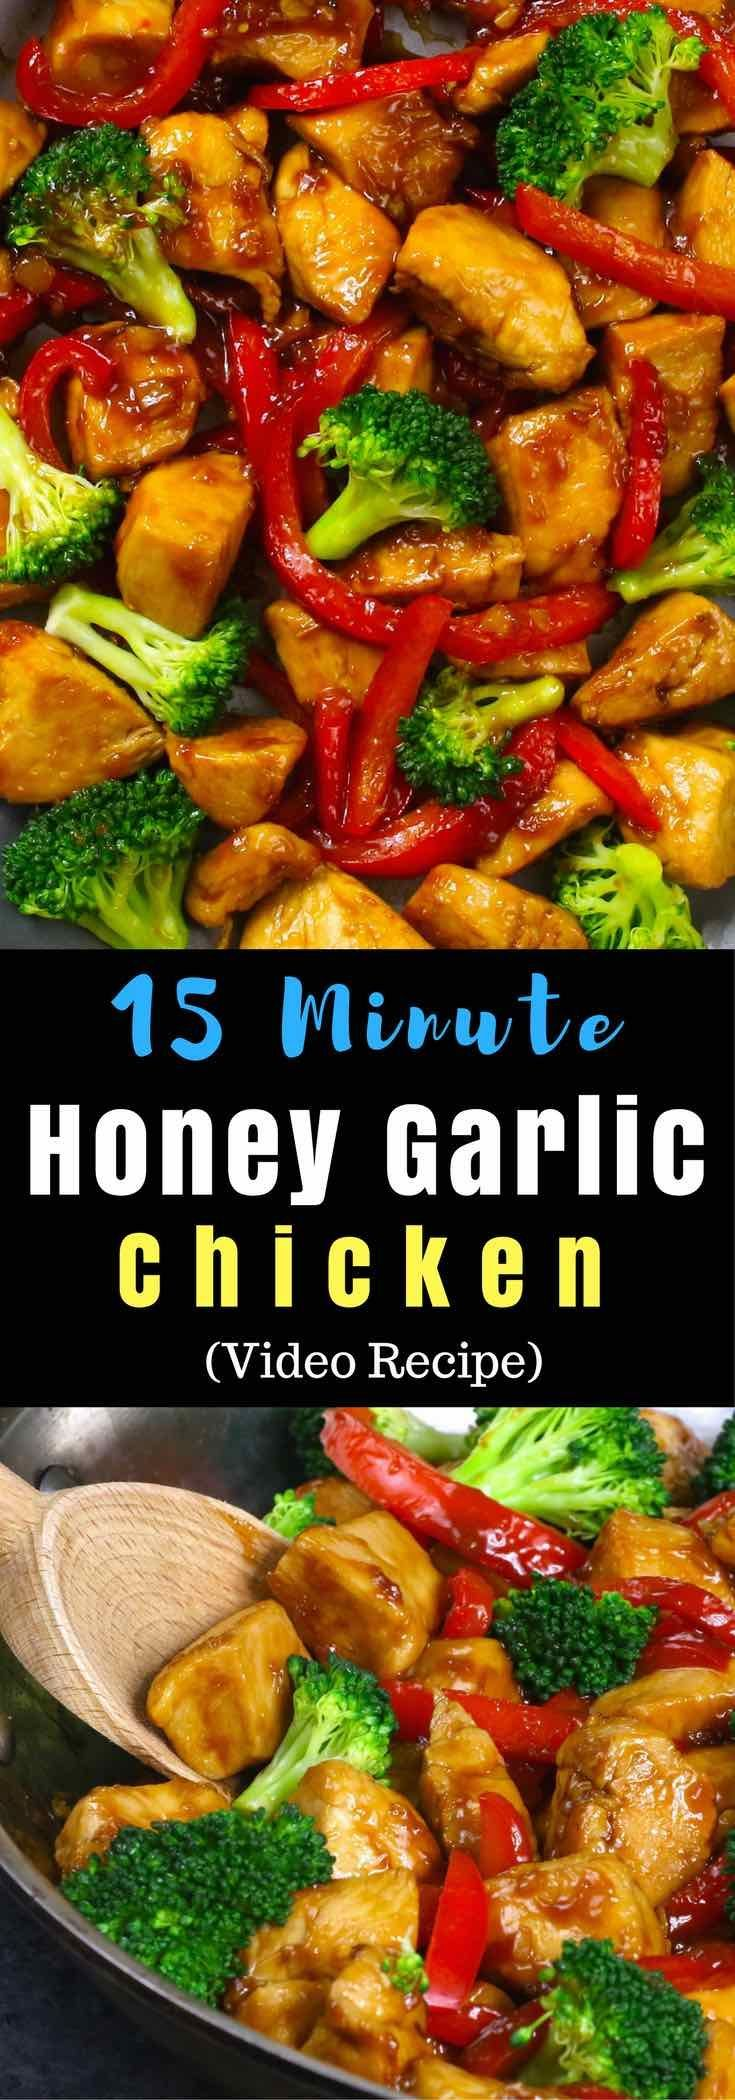 The Easiest Most Unbelievably Delicious Honey Garlic Chicken Recipe And It Ll Be On You Easy Honey Garlic Chicken Garlic Chicken Recipes Honey Garlic Chicken